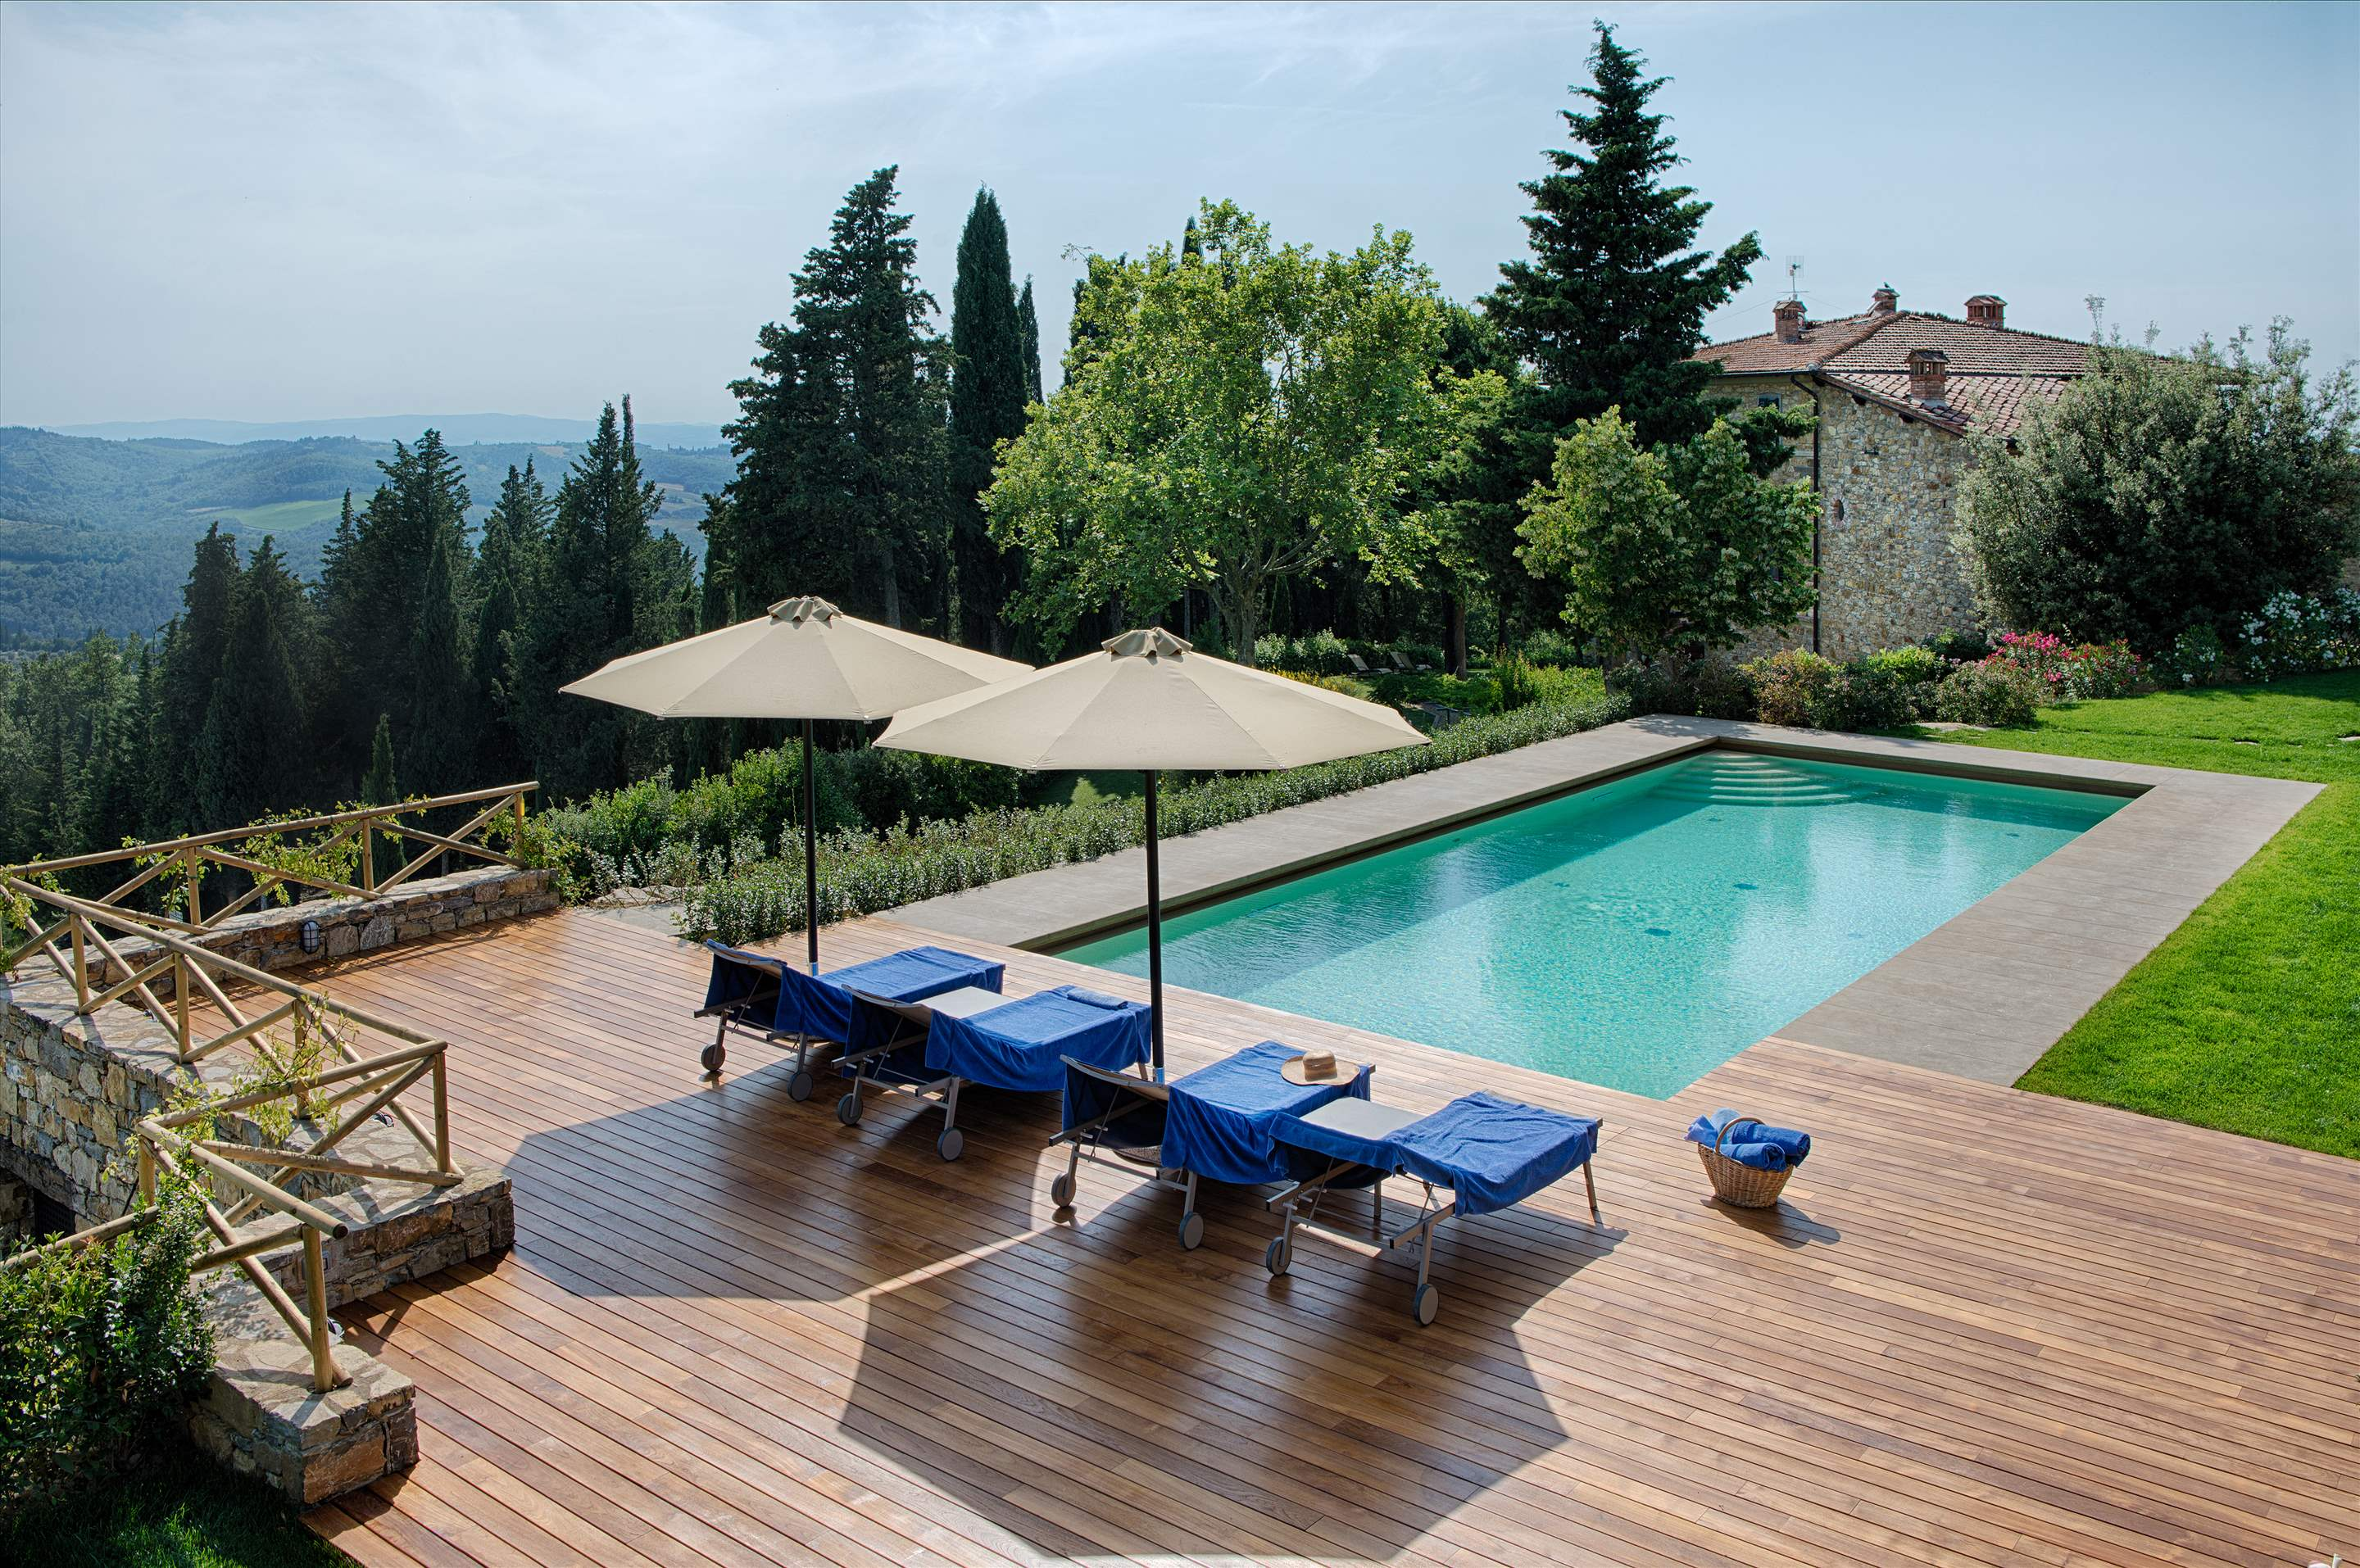 Villa La Valetta, Hotel Bedroom 2 persons, 1 bedroom villa in Chianti & Countryside, Tuscany